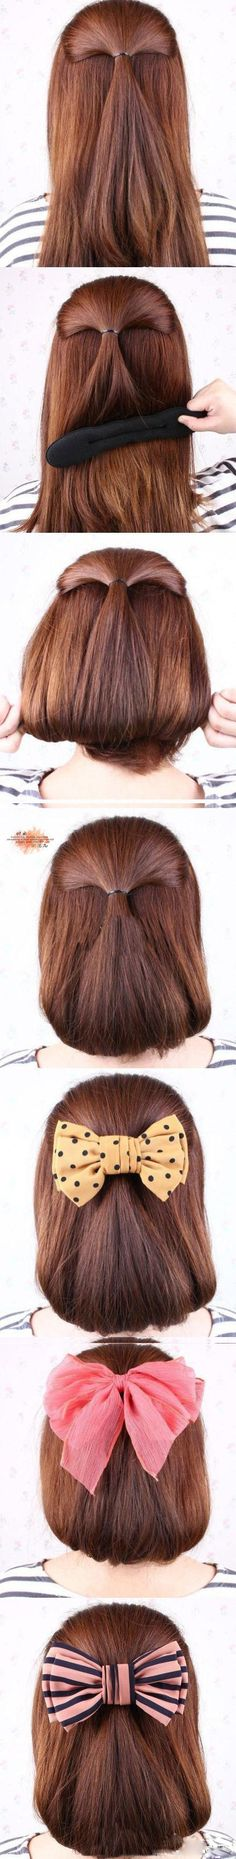 Hair with bows